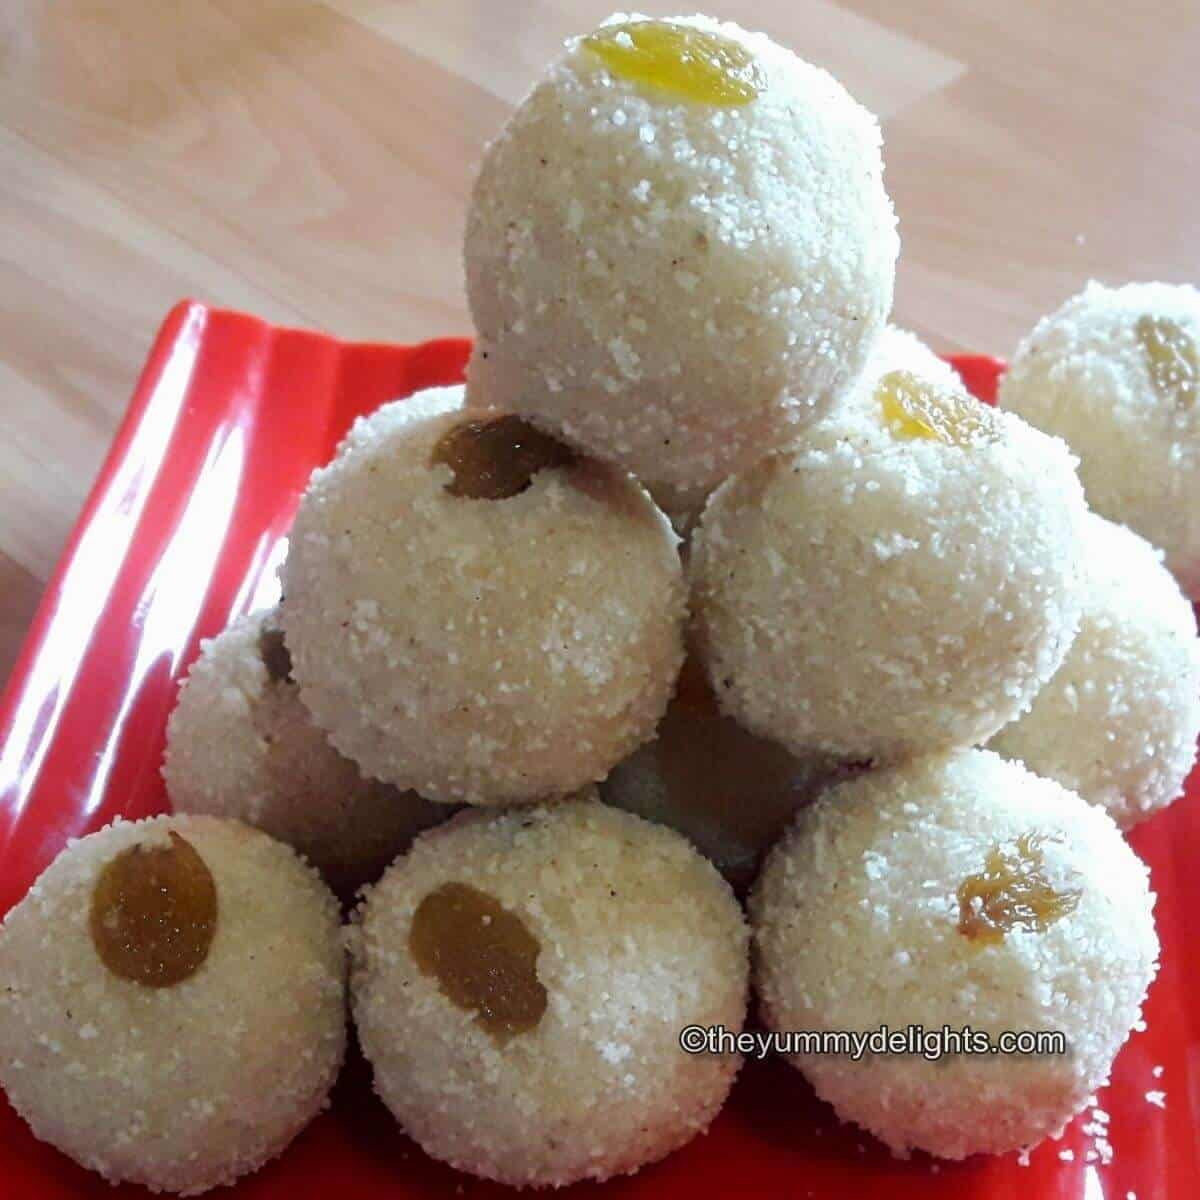 Maharashtrian style rava ladoo placed on a red plate. Garnished with raisins.